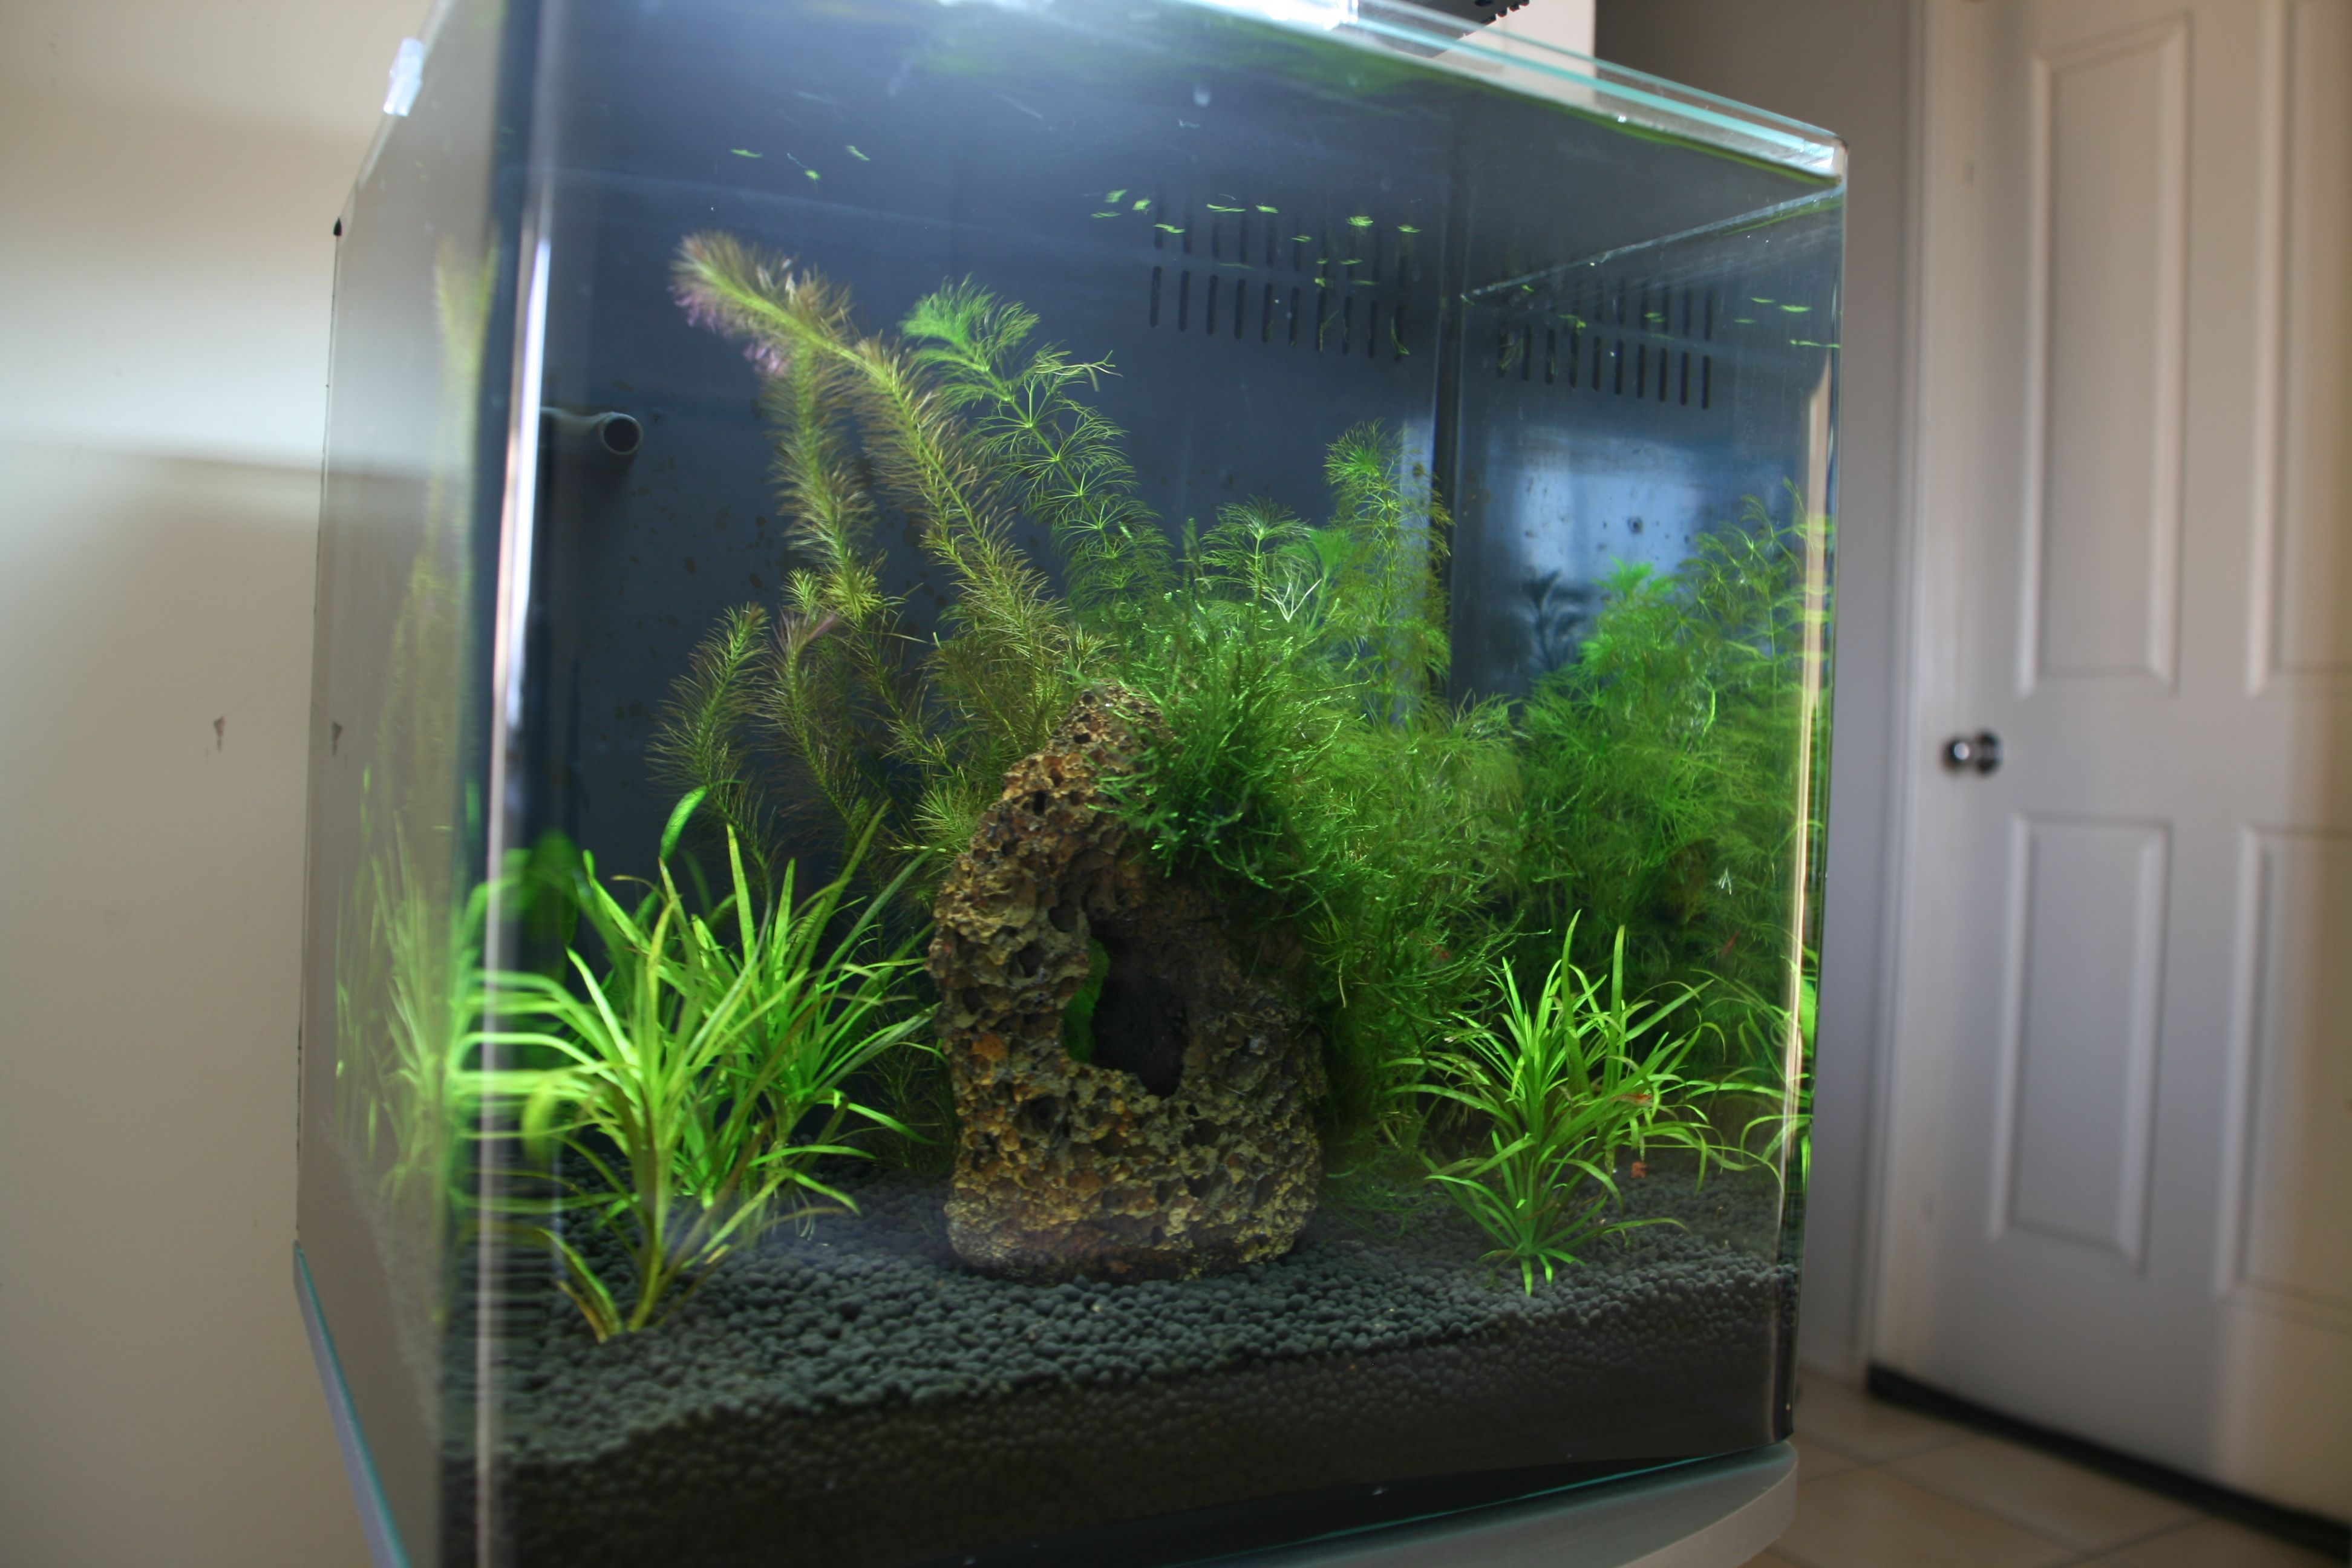 Rearanged plants and added a lava rock withJava Moss tyed to it with